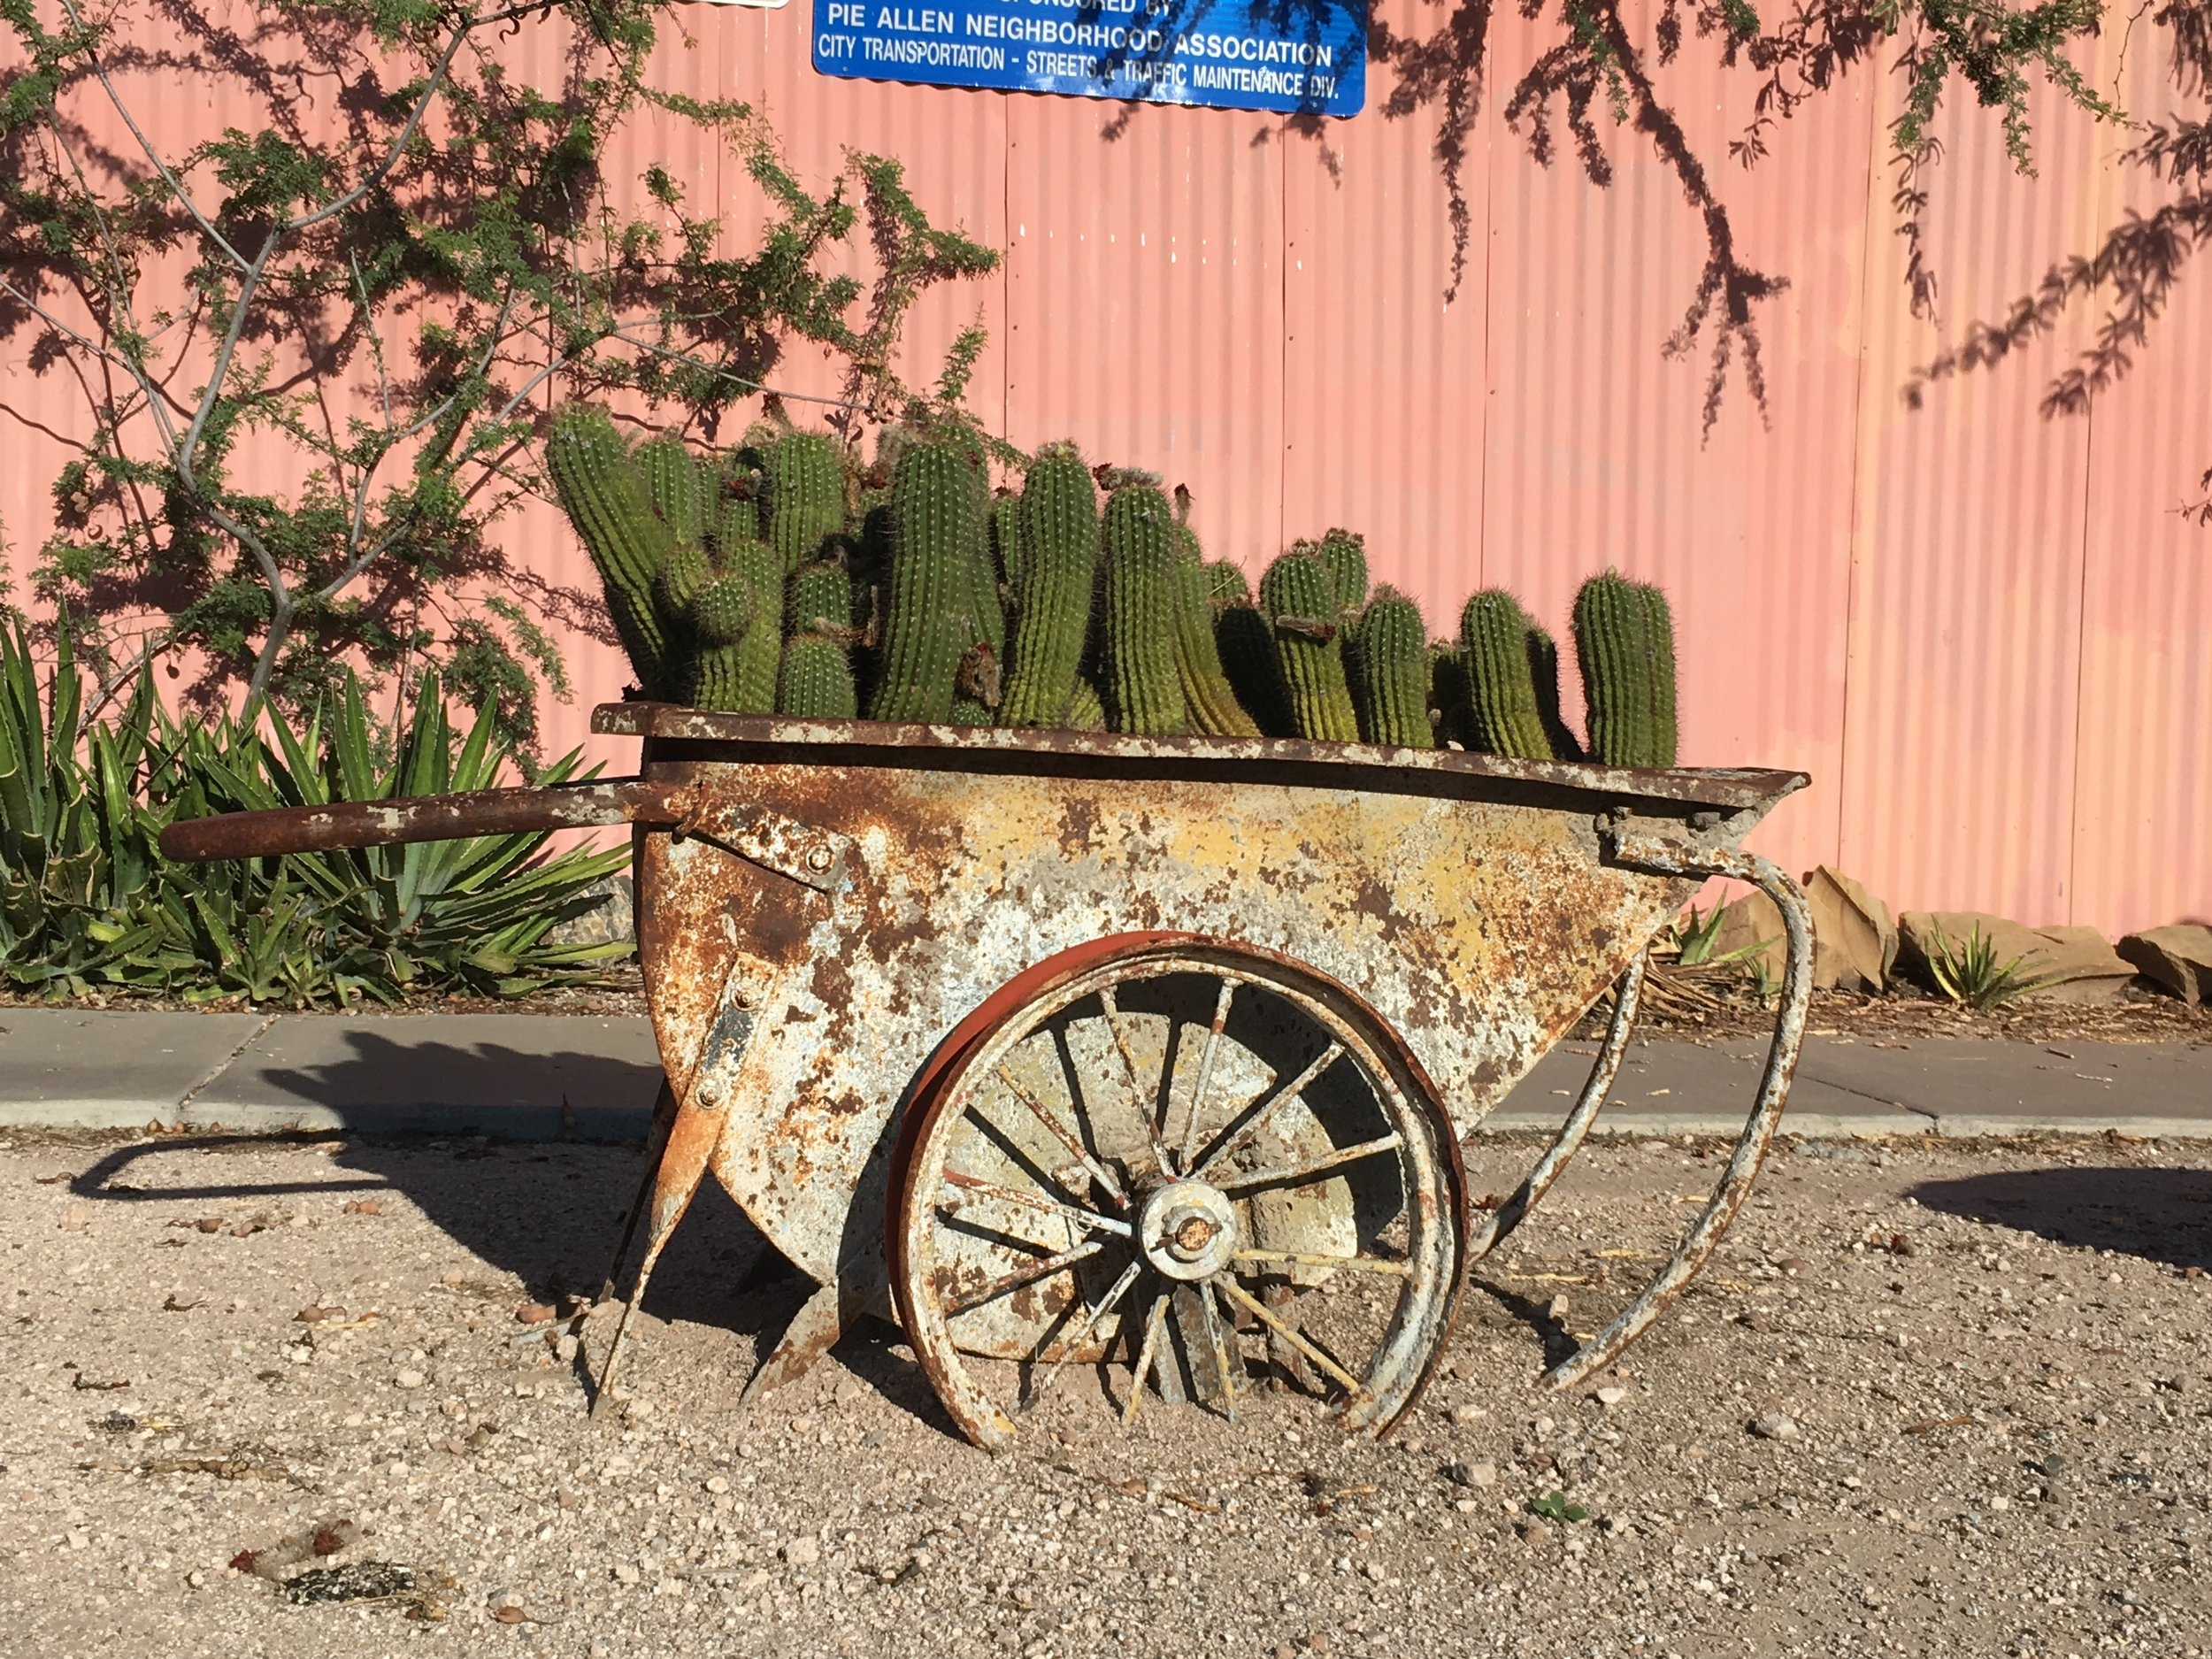 Old mining equipment is now a planter in the Pie Allen neighborhood south of the University of Arizona.